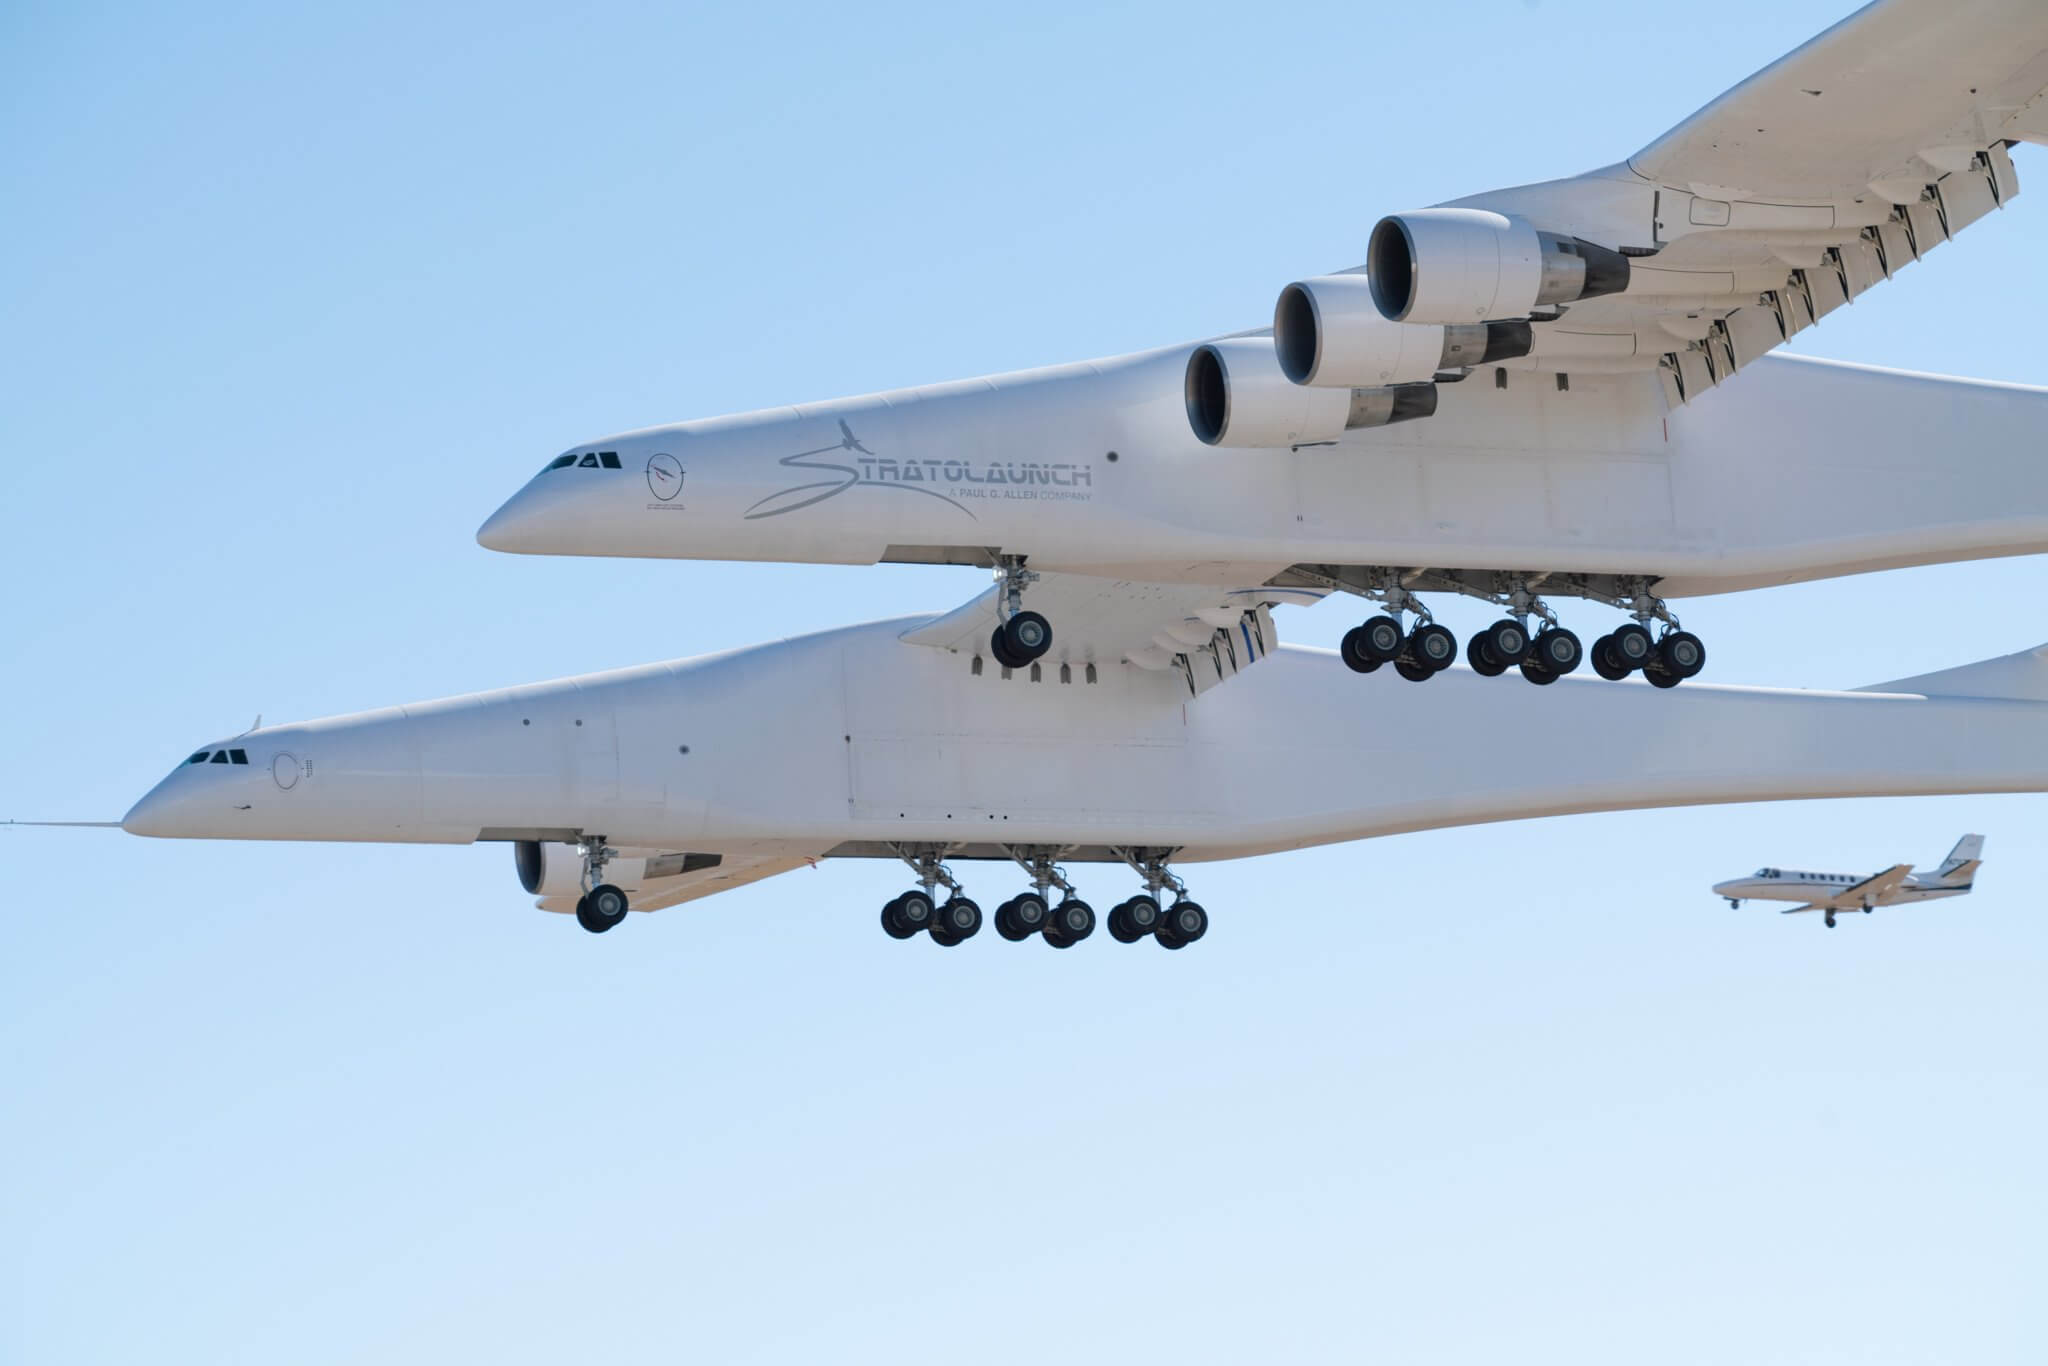 Stratolaunch First Flight takeoff